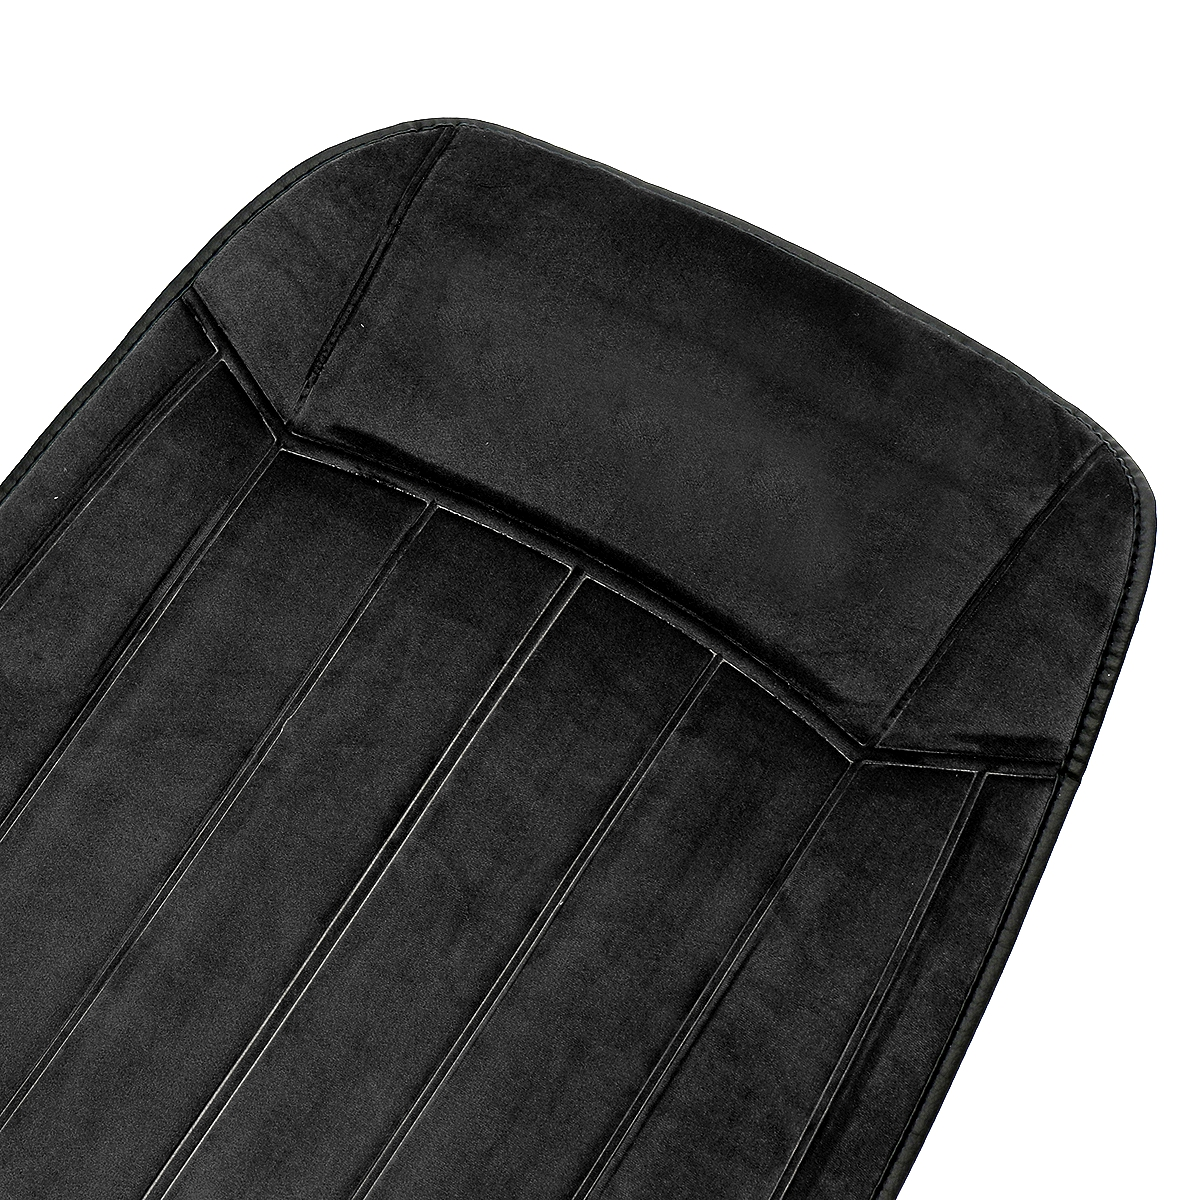 12V Electric Fleeced Car Heated Seat Cushion Cover Seat Heater Warmer Winter Household Mat